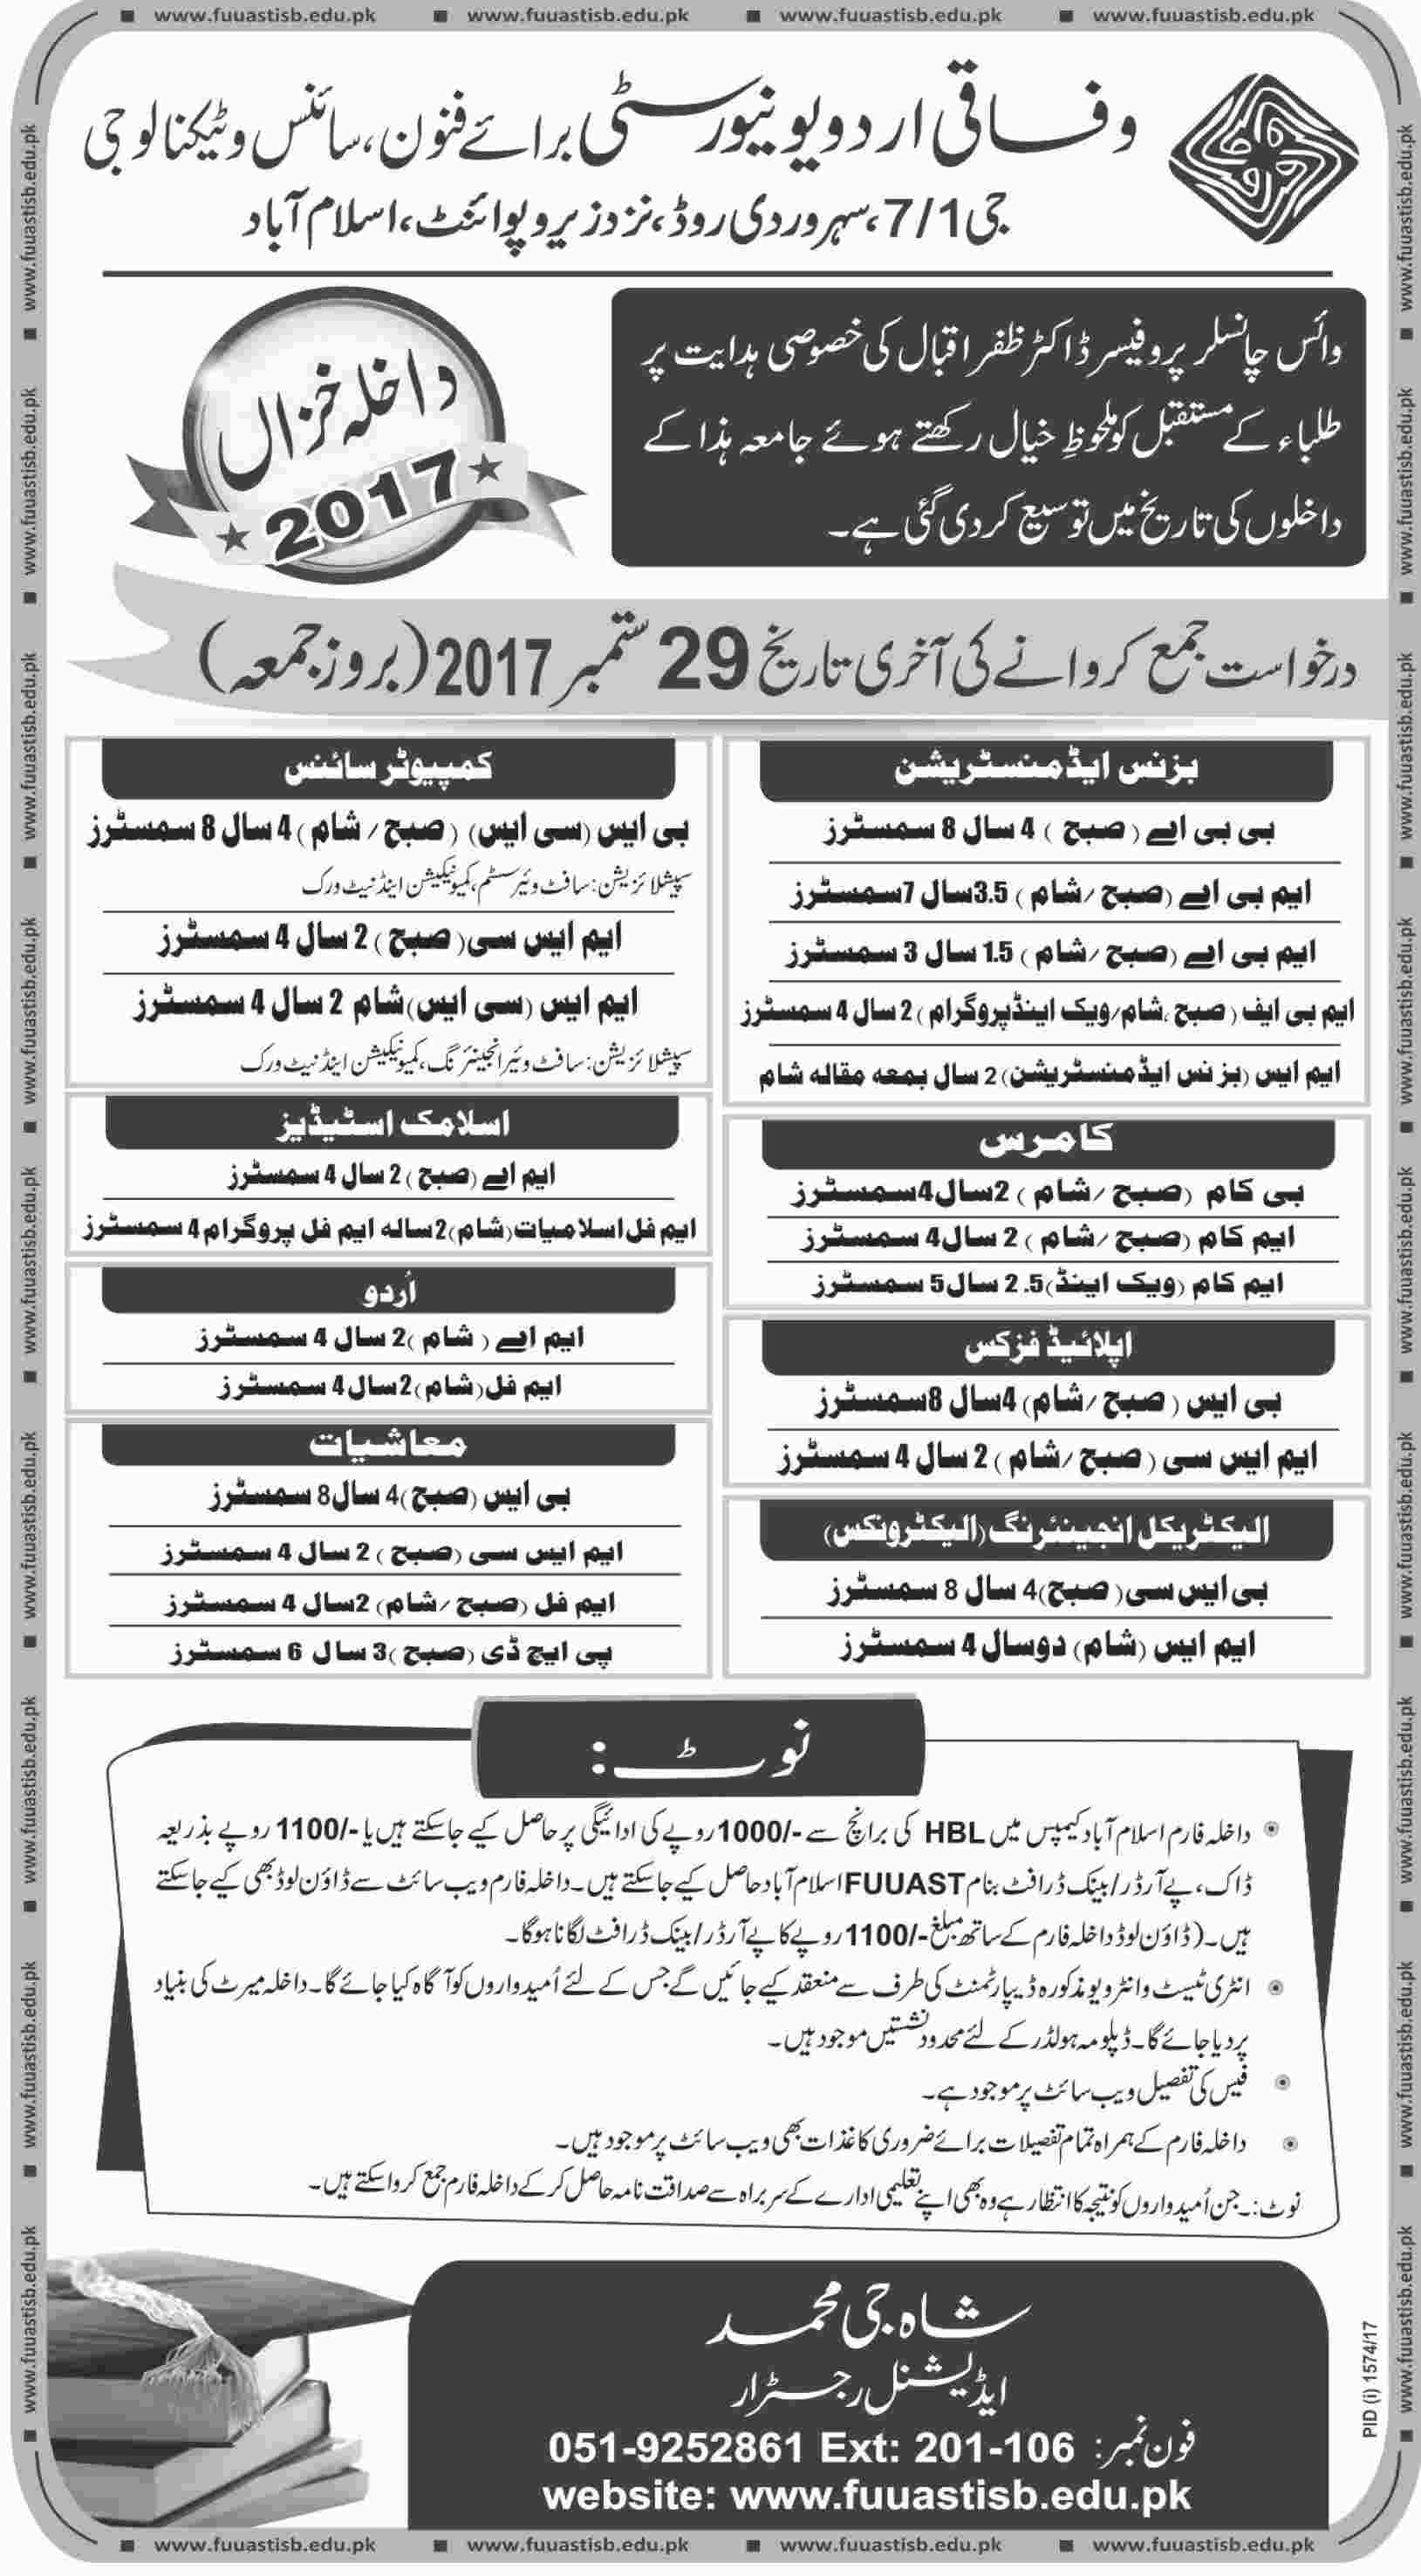 Federal Urdu University Islamabad Admission Autumn 2017 Form, Entry Test Date